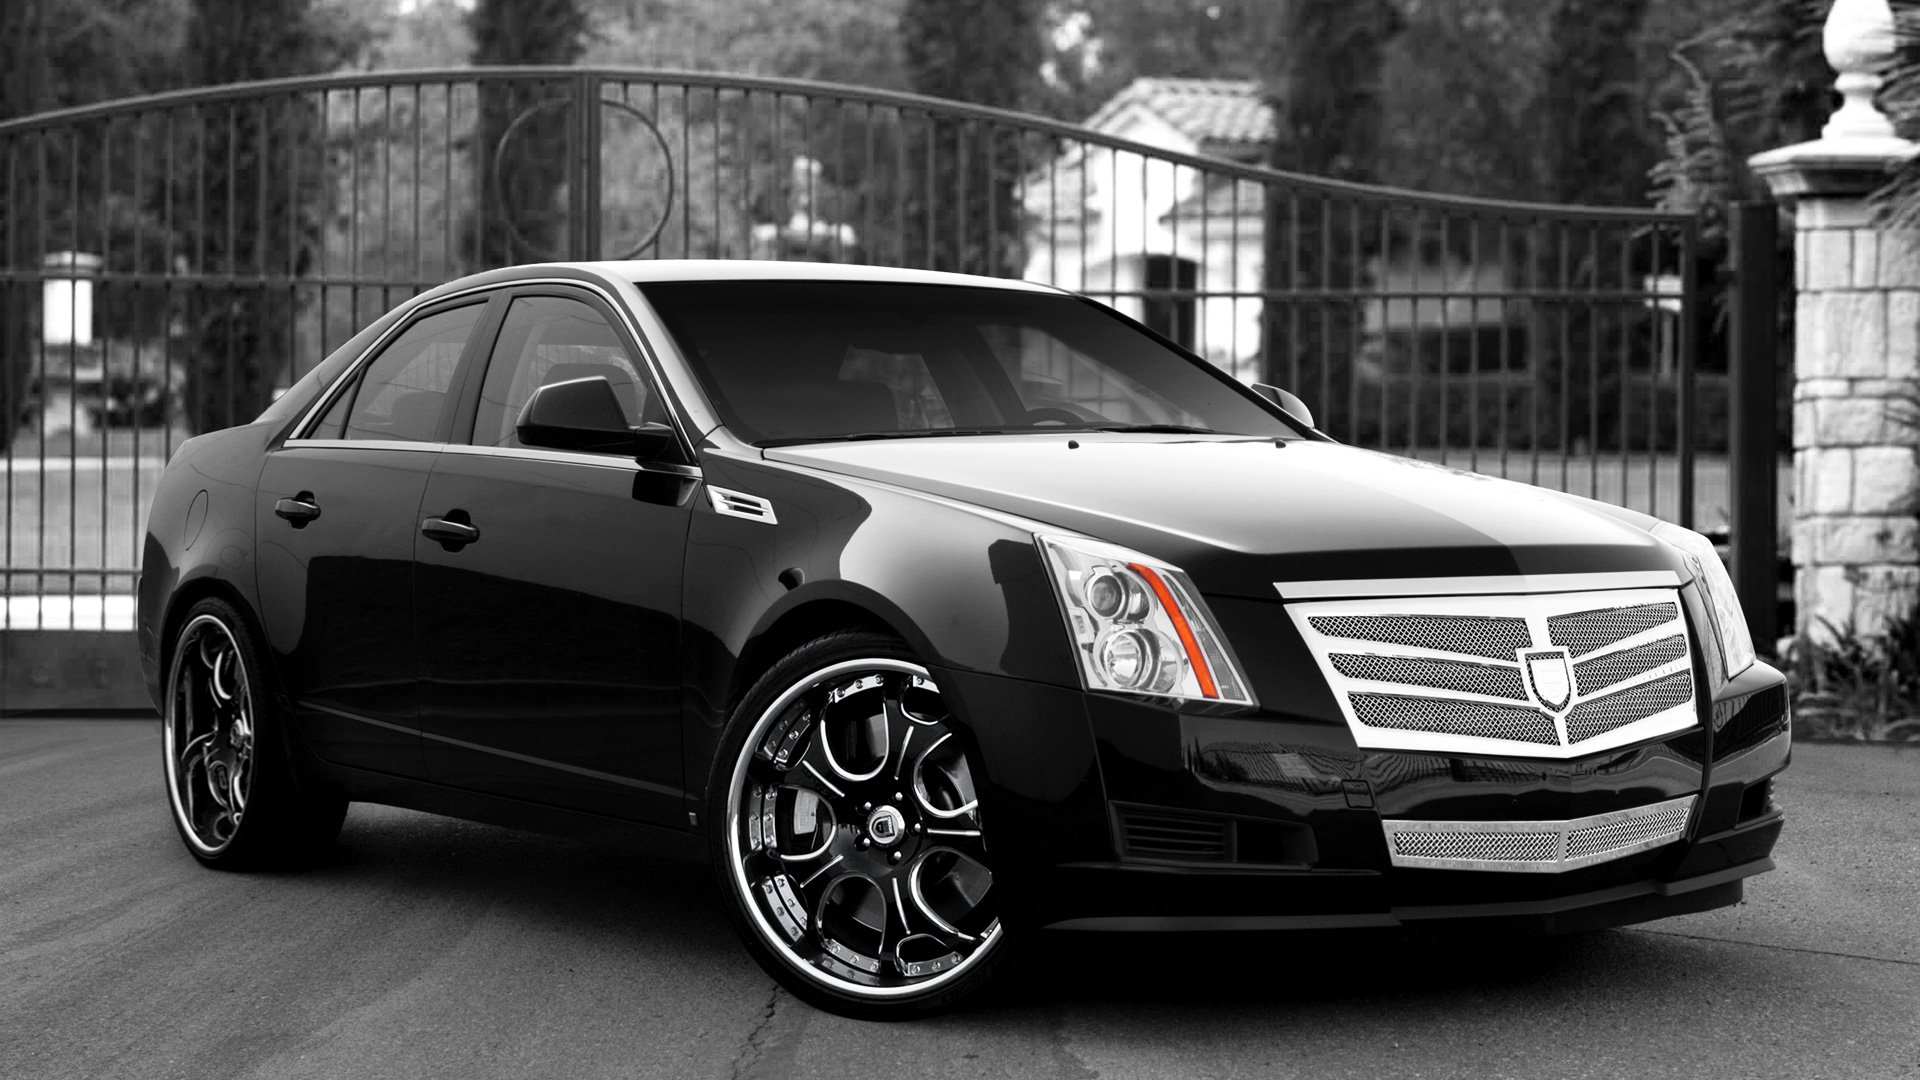 Cool Cadillac Wallpapers Wallpapersafari